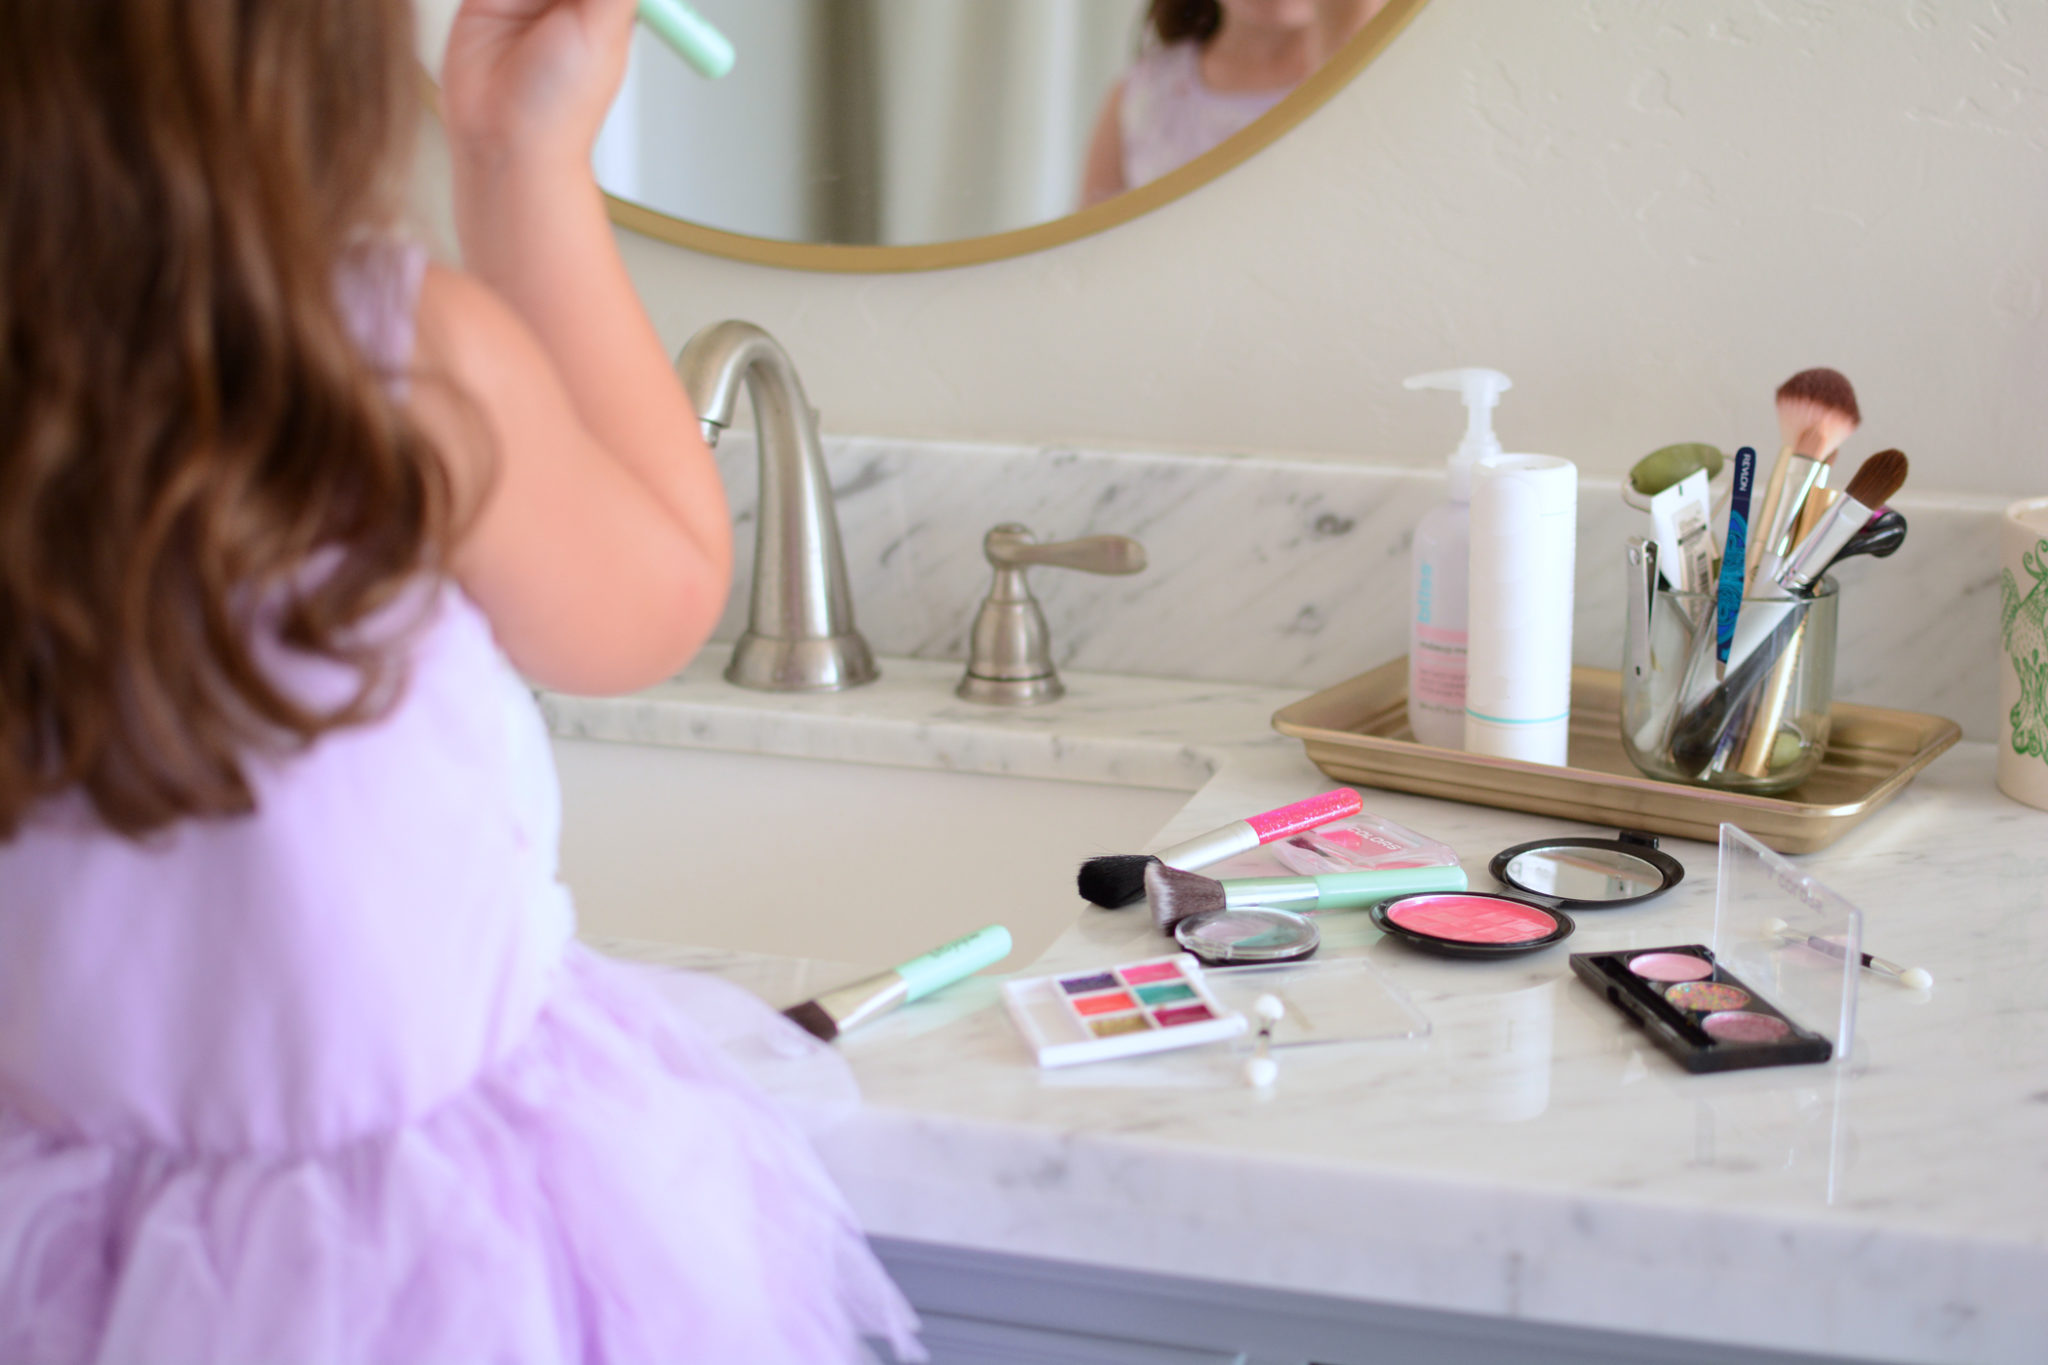 Little girl at bathroom counter, with DIY pretend makeup spread out on the counter next to her